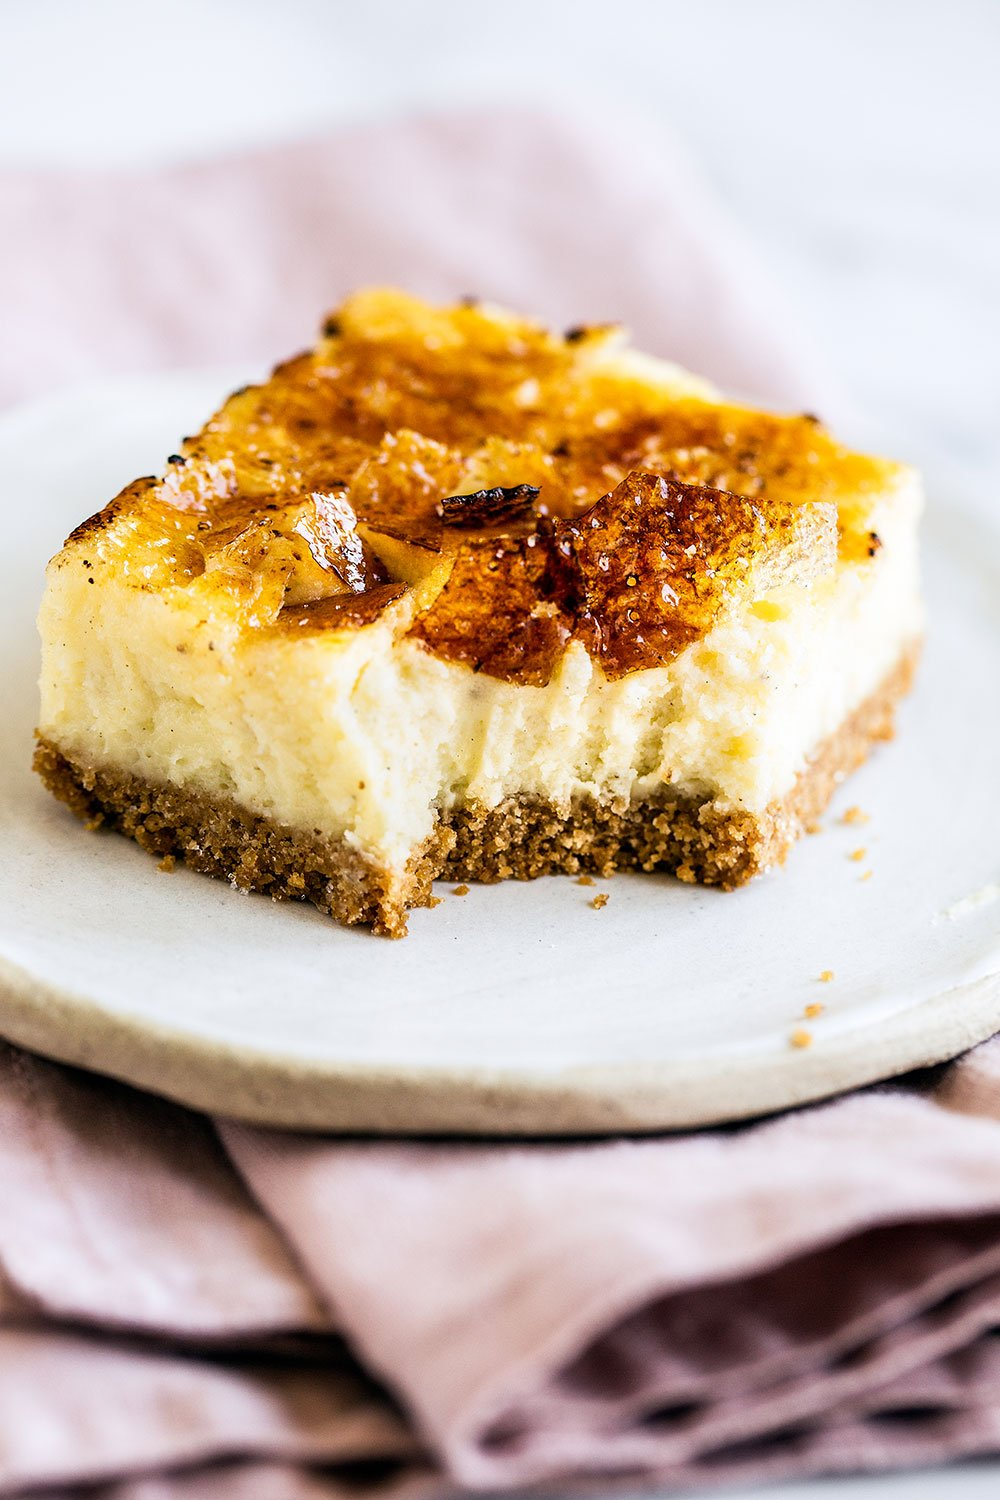 These Creme Brulee Cheesecake Bars turn the classic French dessert into something even easier and tastier! Graham cracker crust, vanilla bean cheesecake filling, and a bruleed sugar topping. YUM!